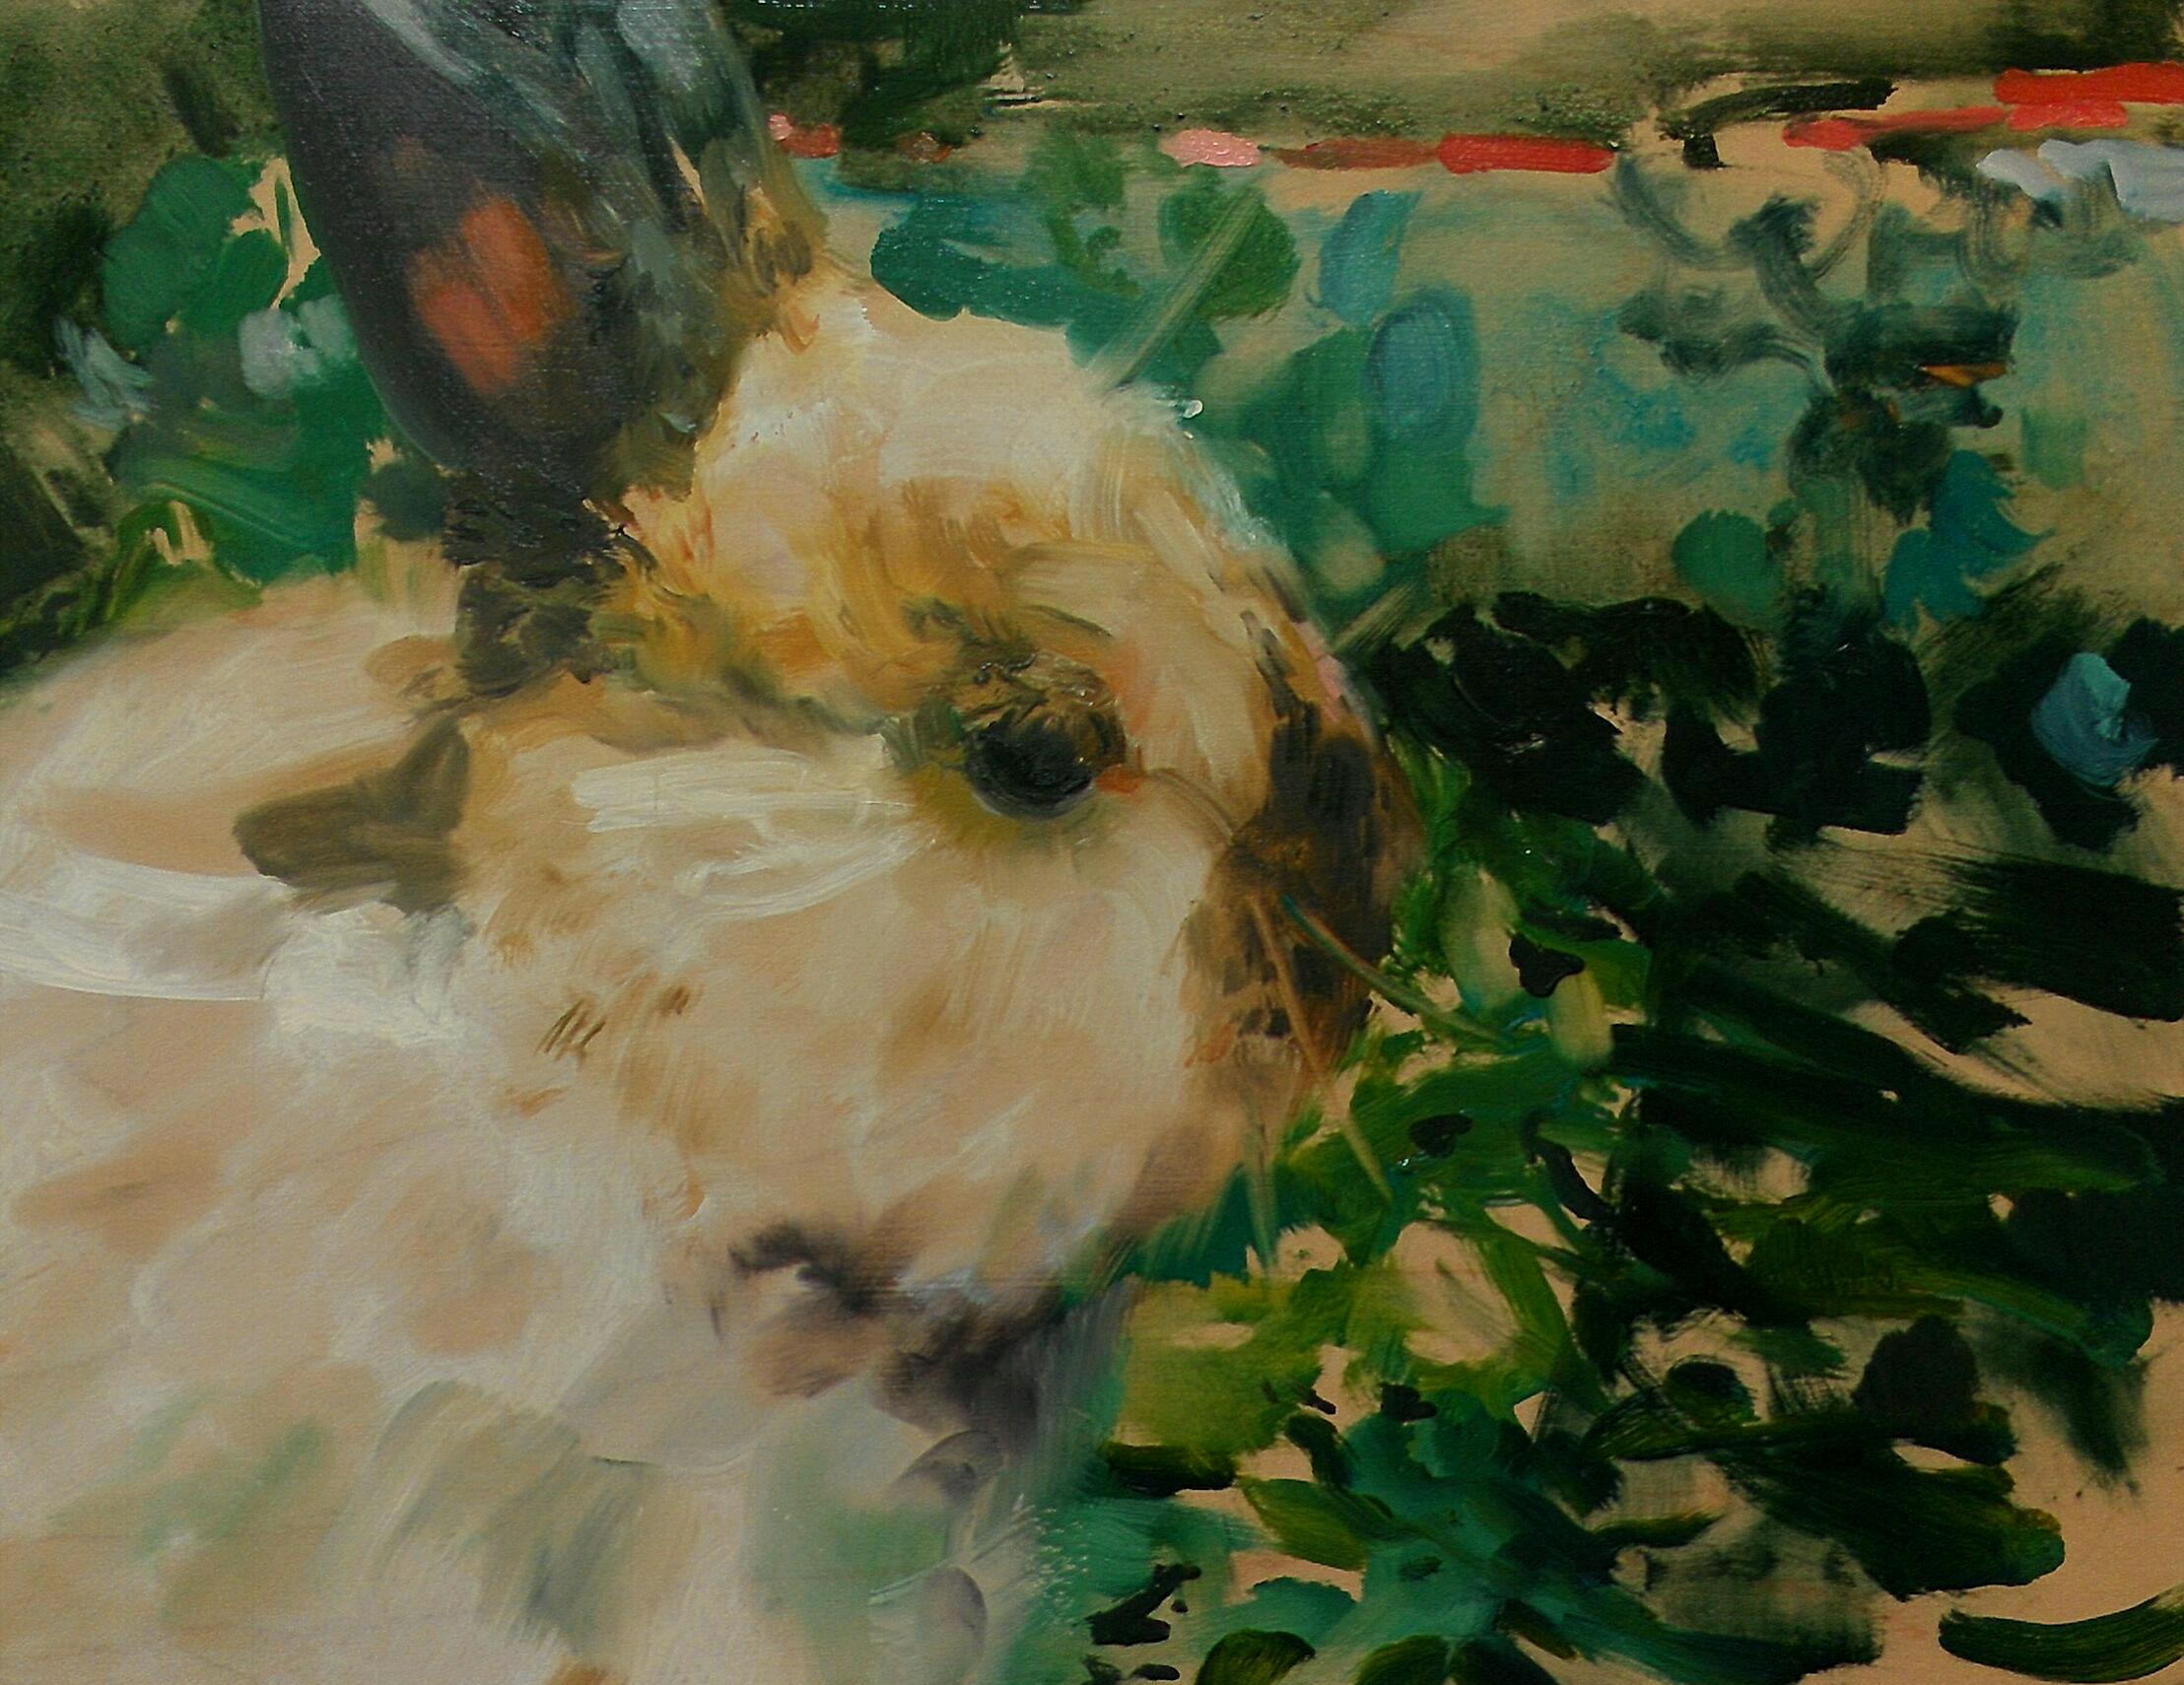 """Ollie"", 2014, Oil on Cradled Maple Panel by Rebecca George. Catalog cover image for ""Have Many Rabbit"" Exhibition, 2014."